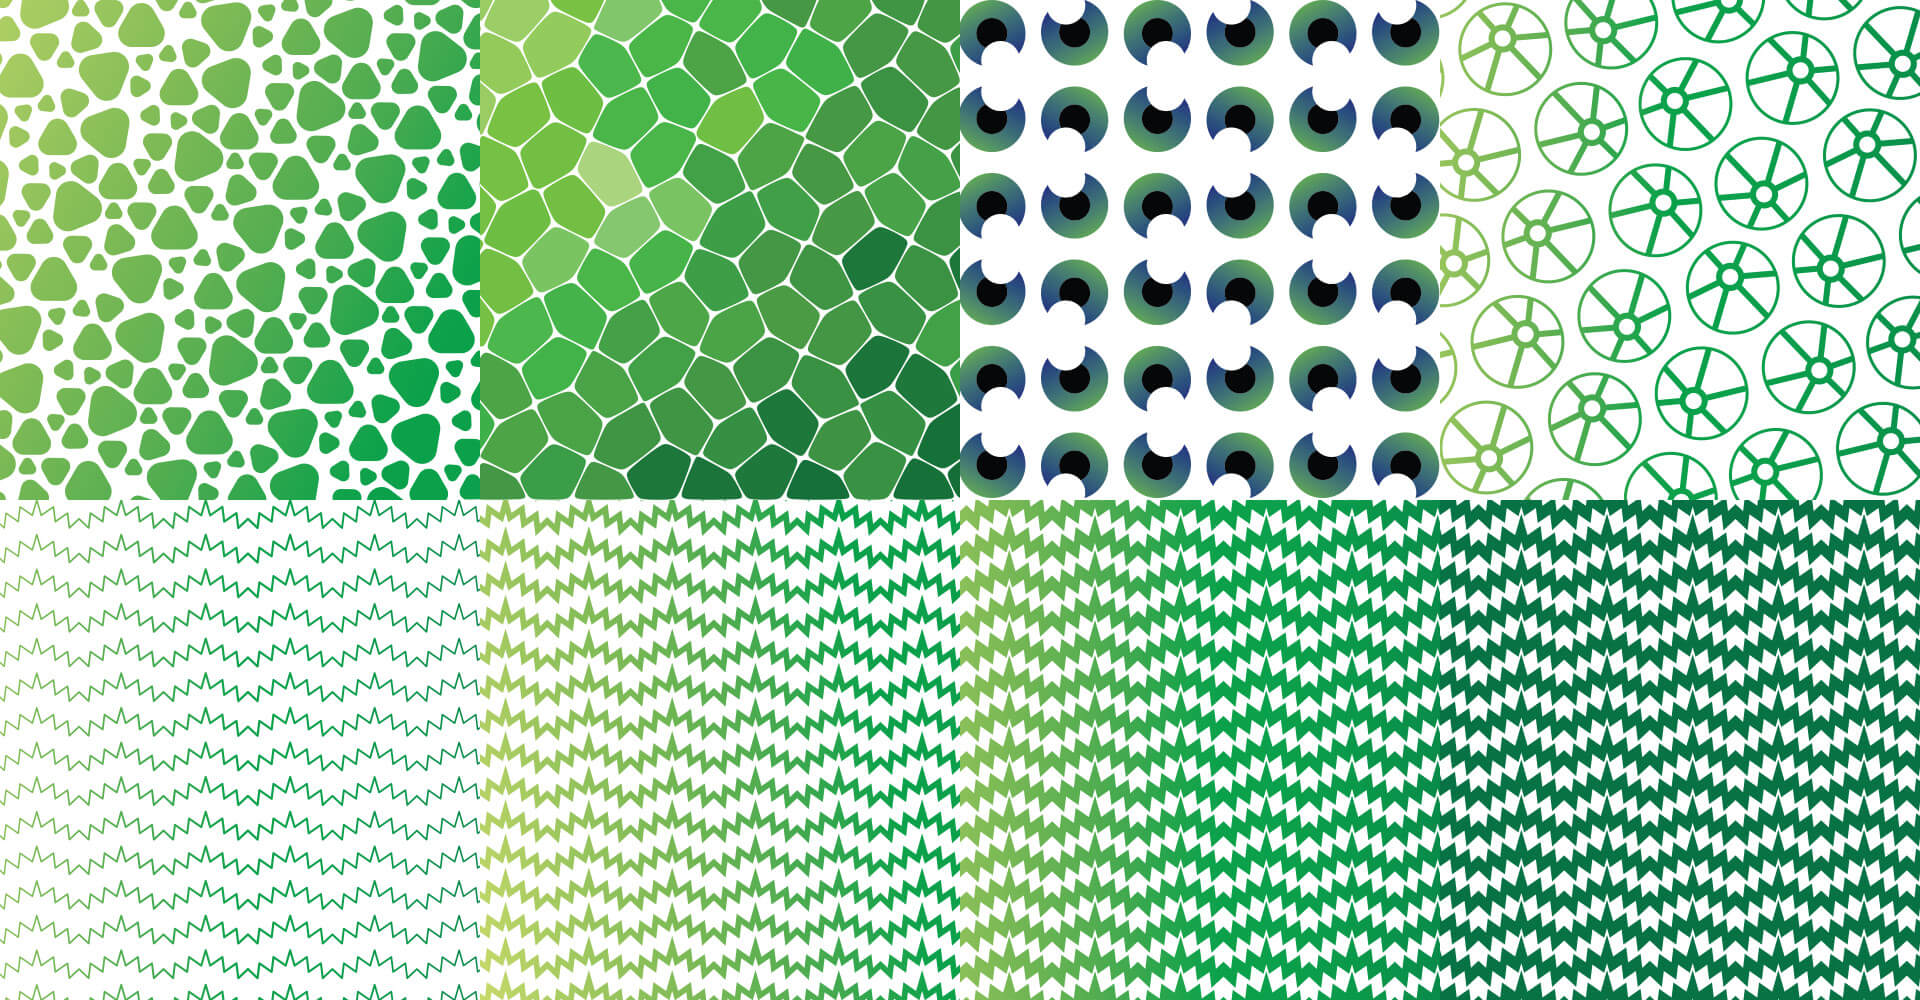 05 camarisol patterns